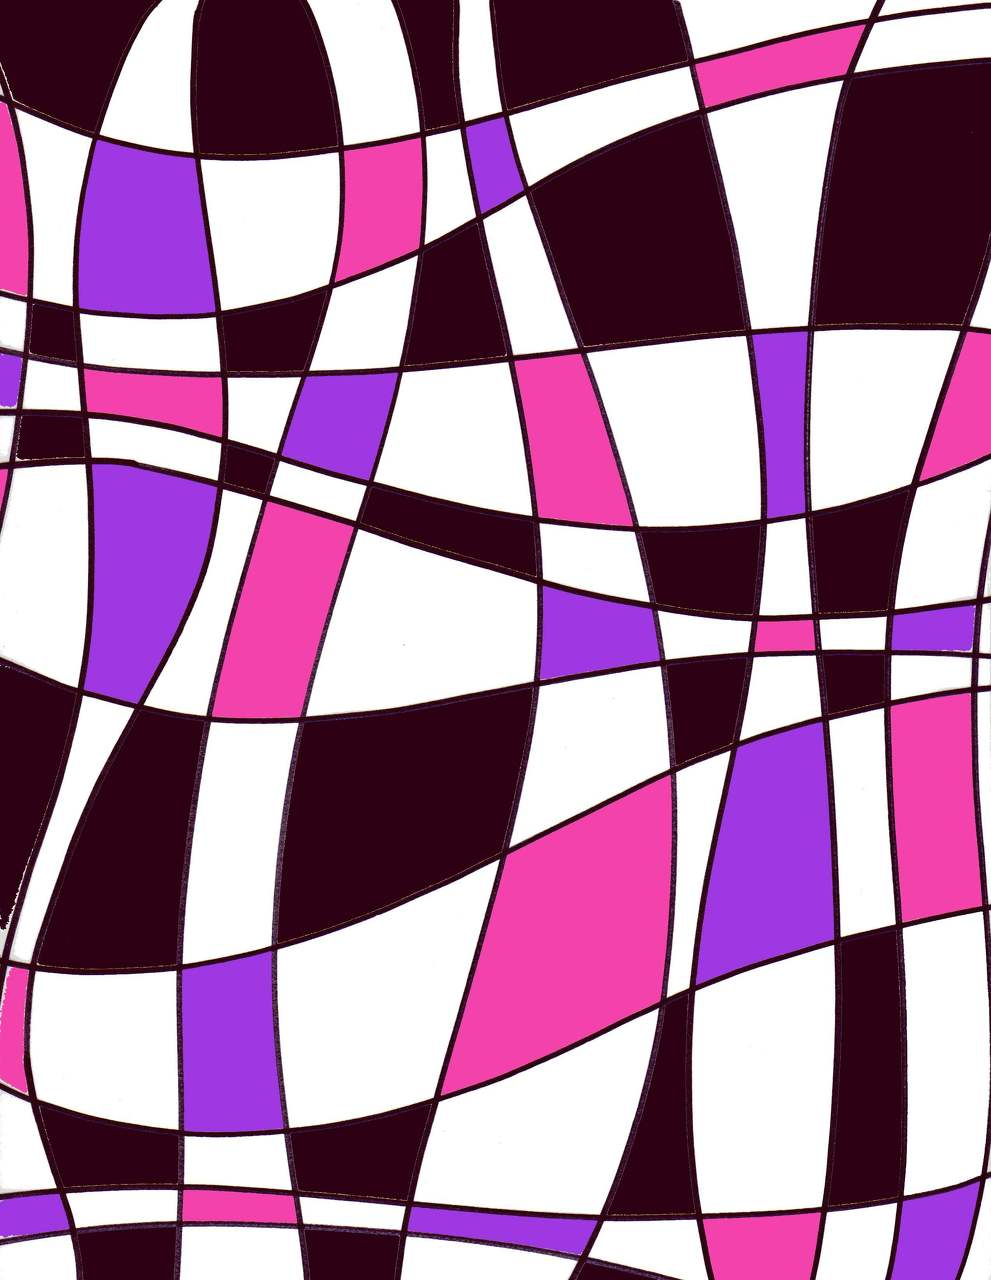 Abstract checkers4.JPG